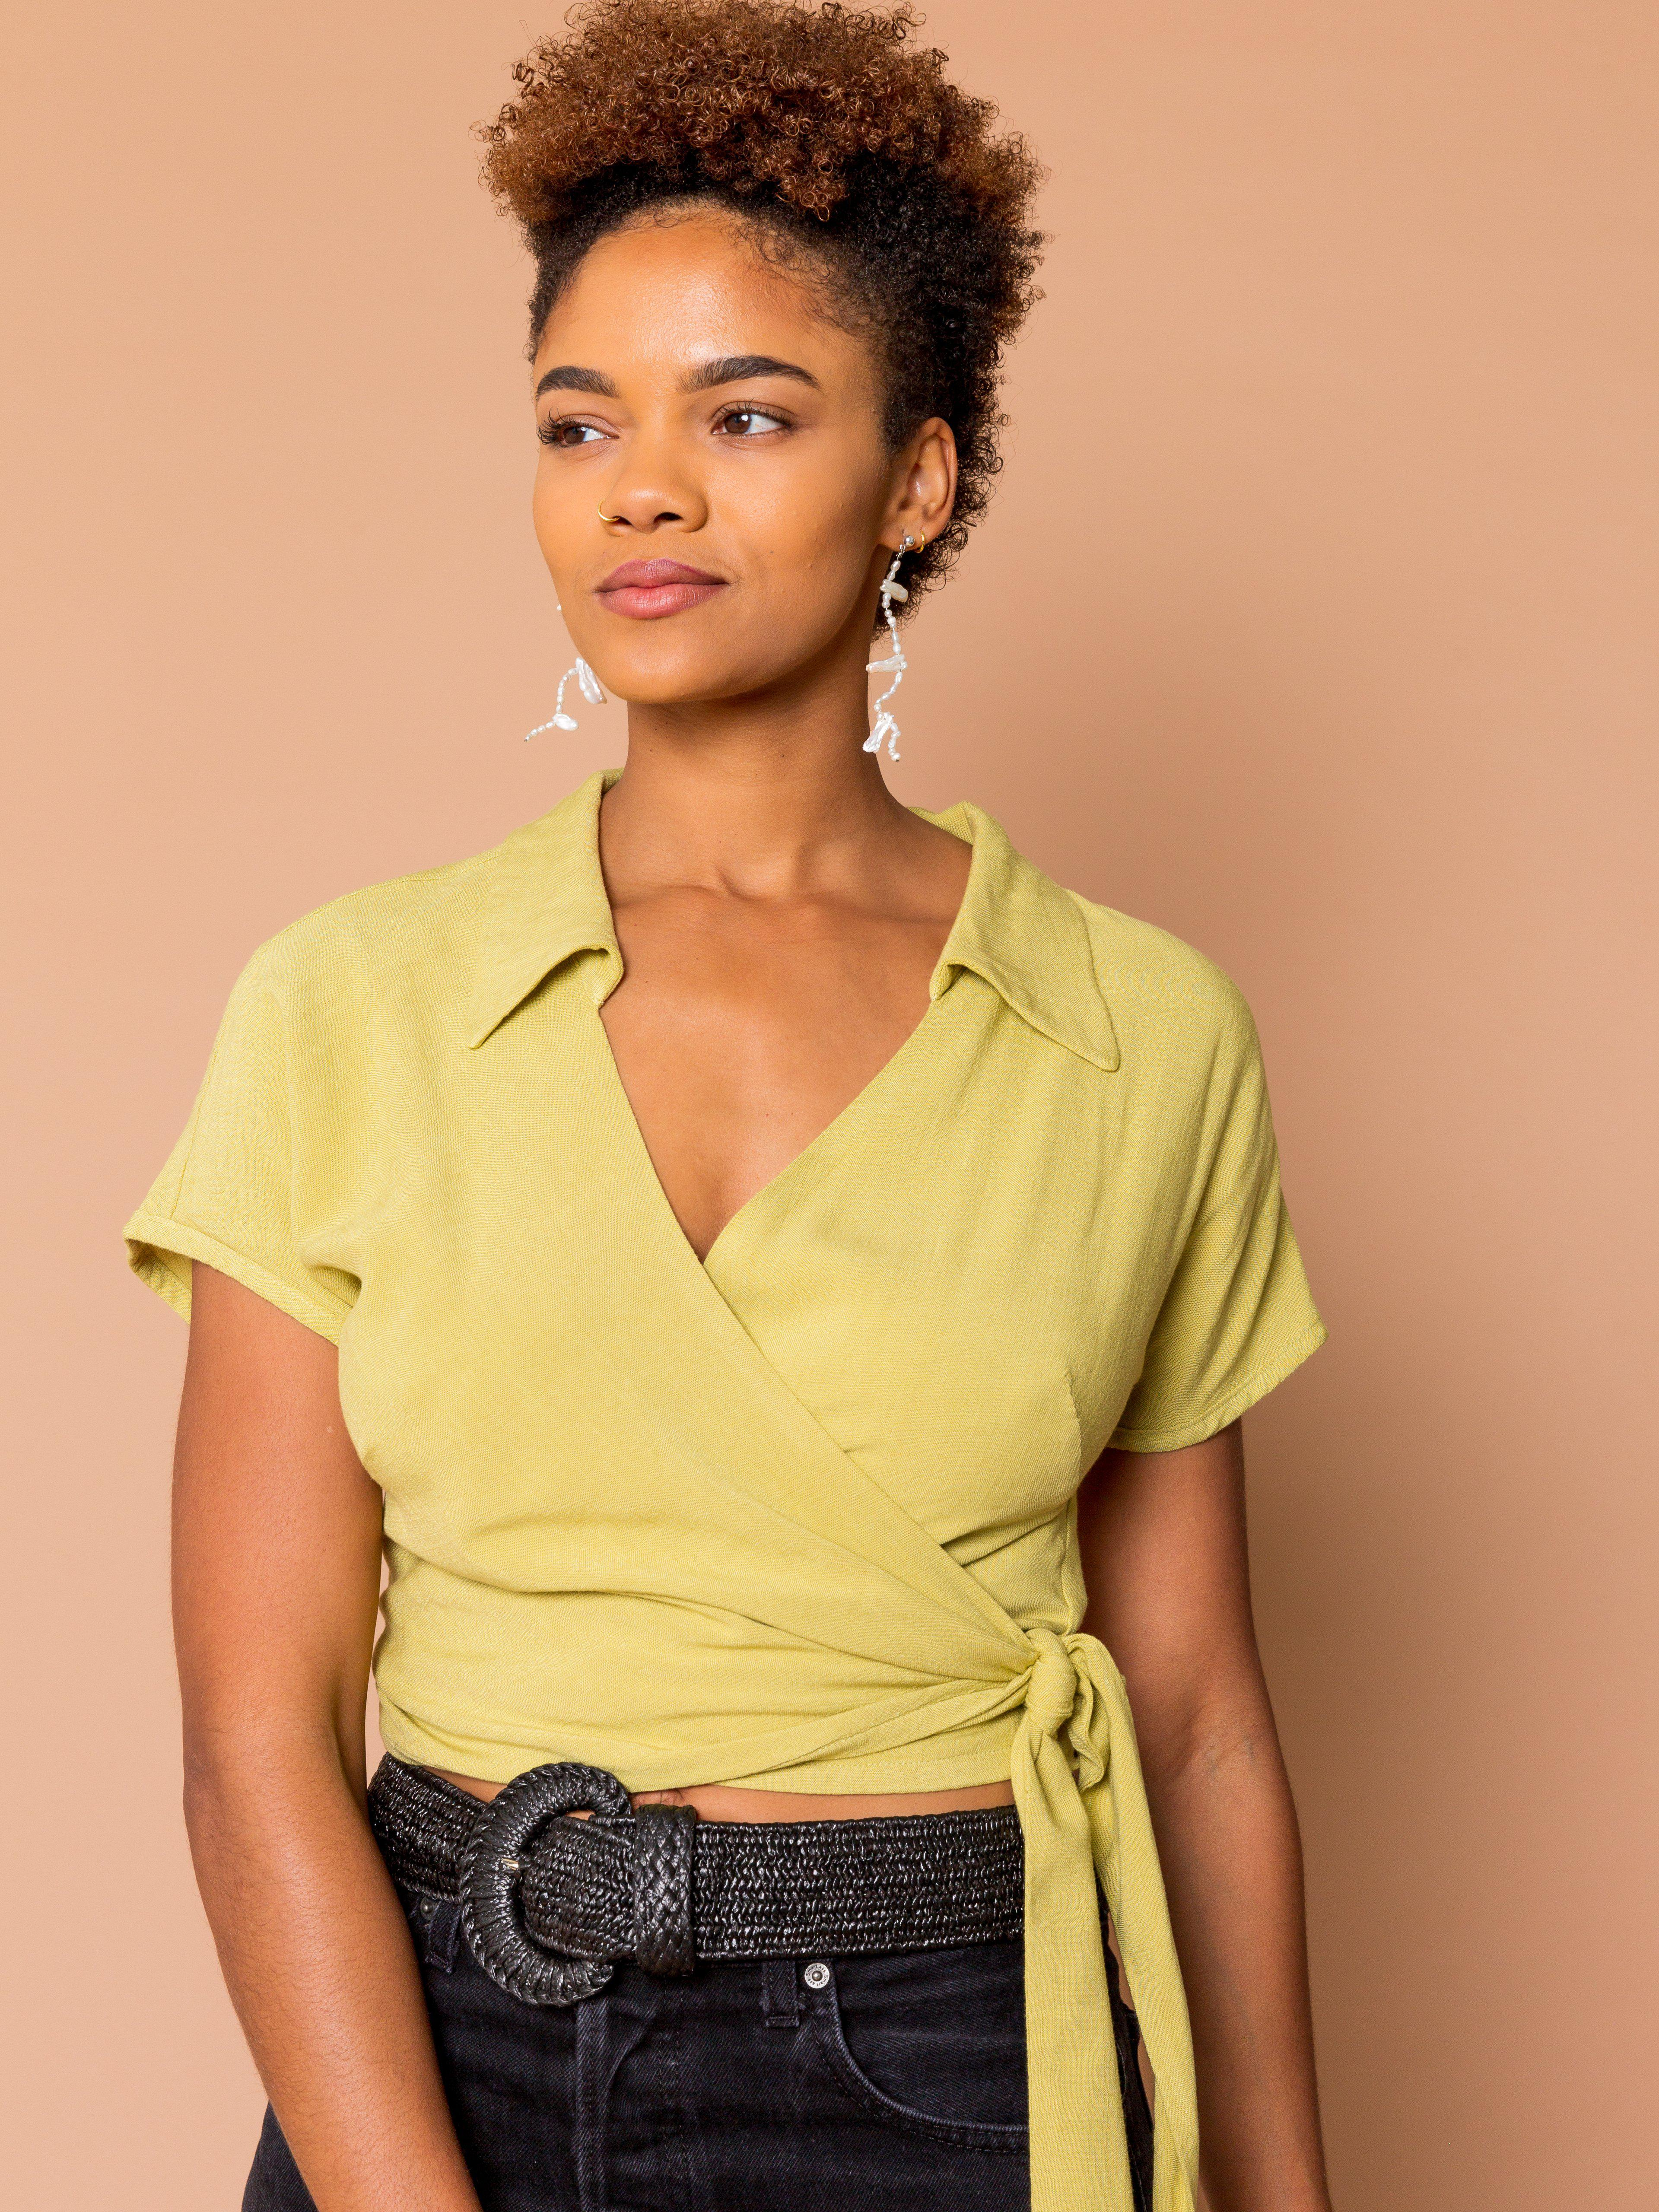 THE BOWLER WRAP TOP ~ Pear